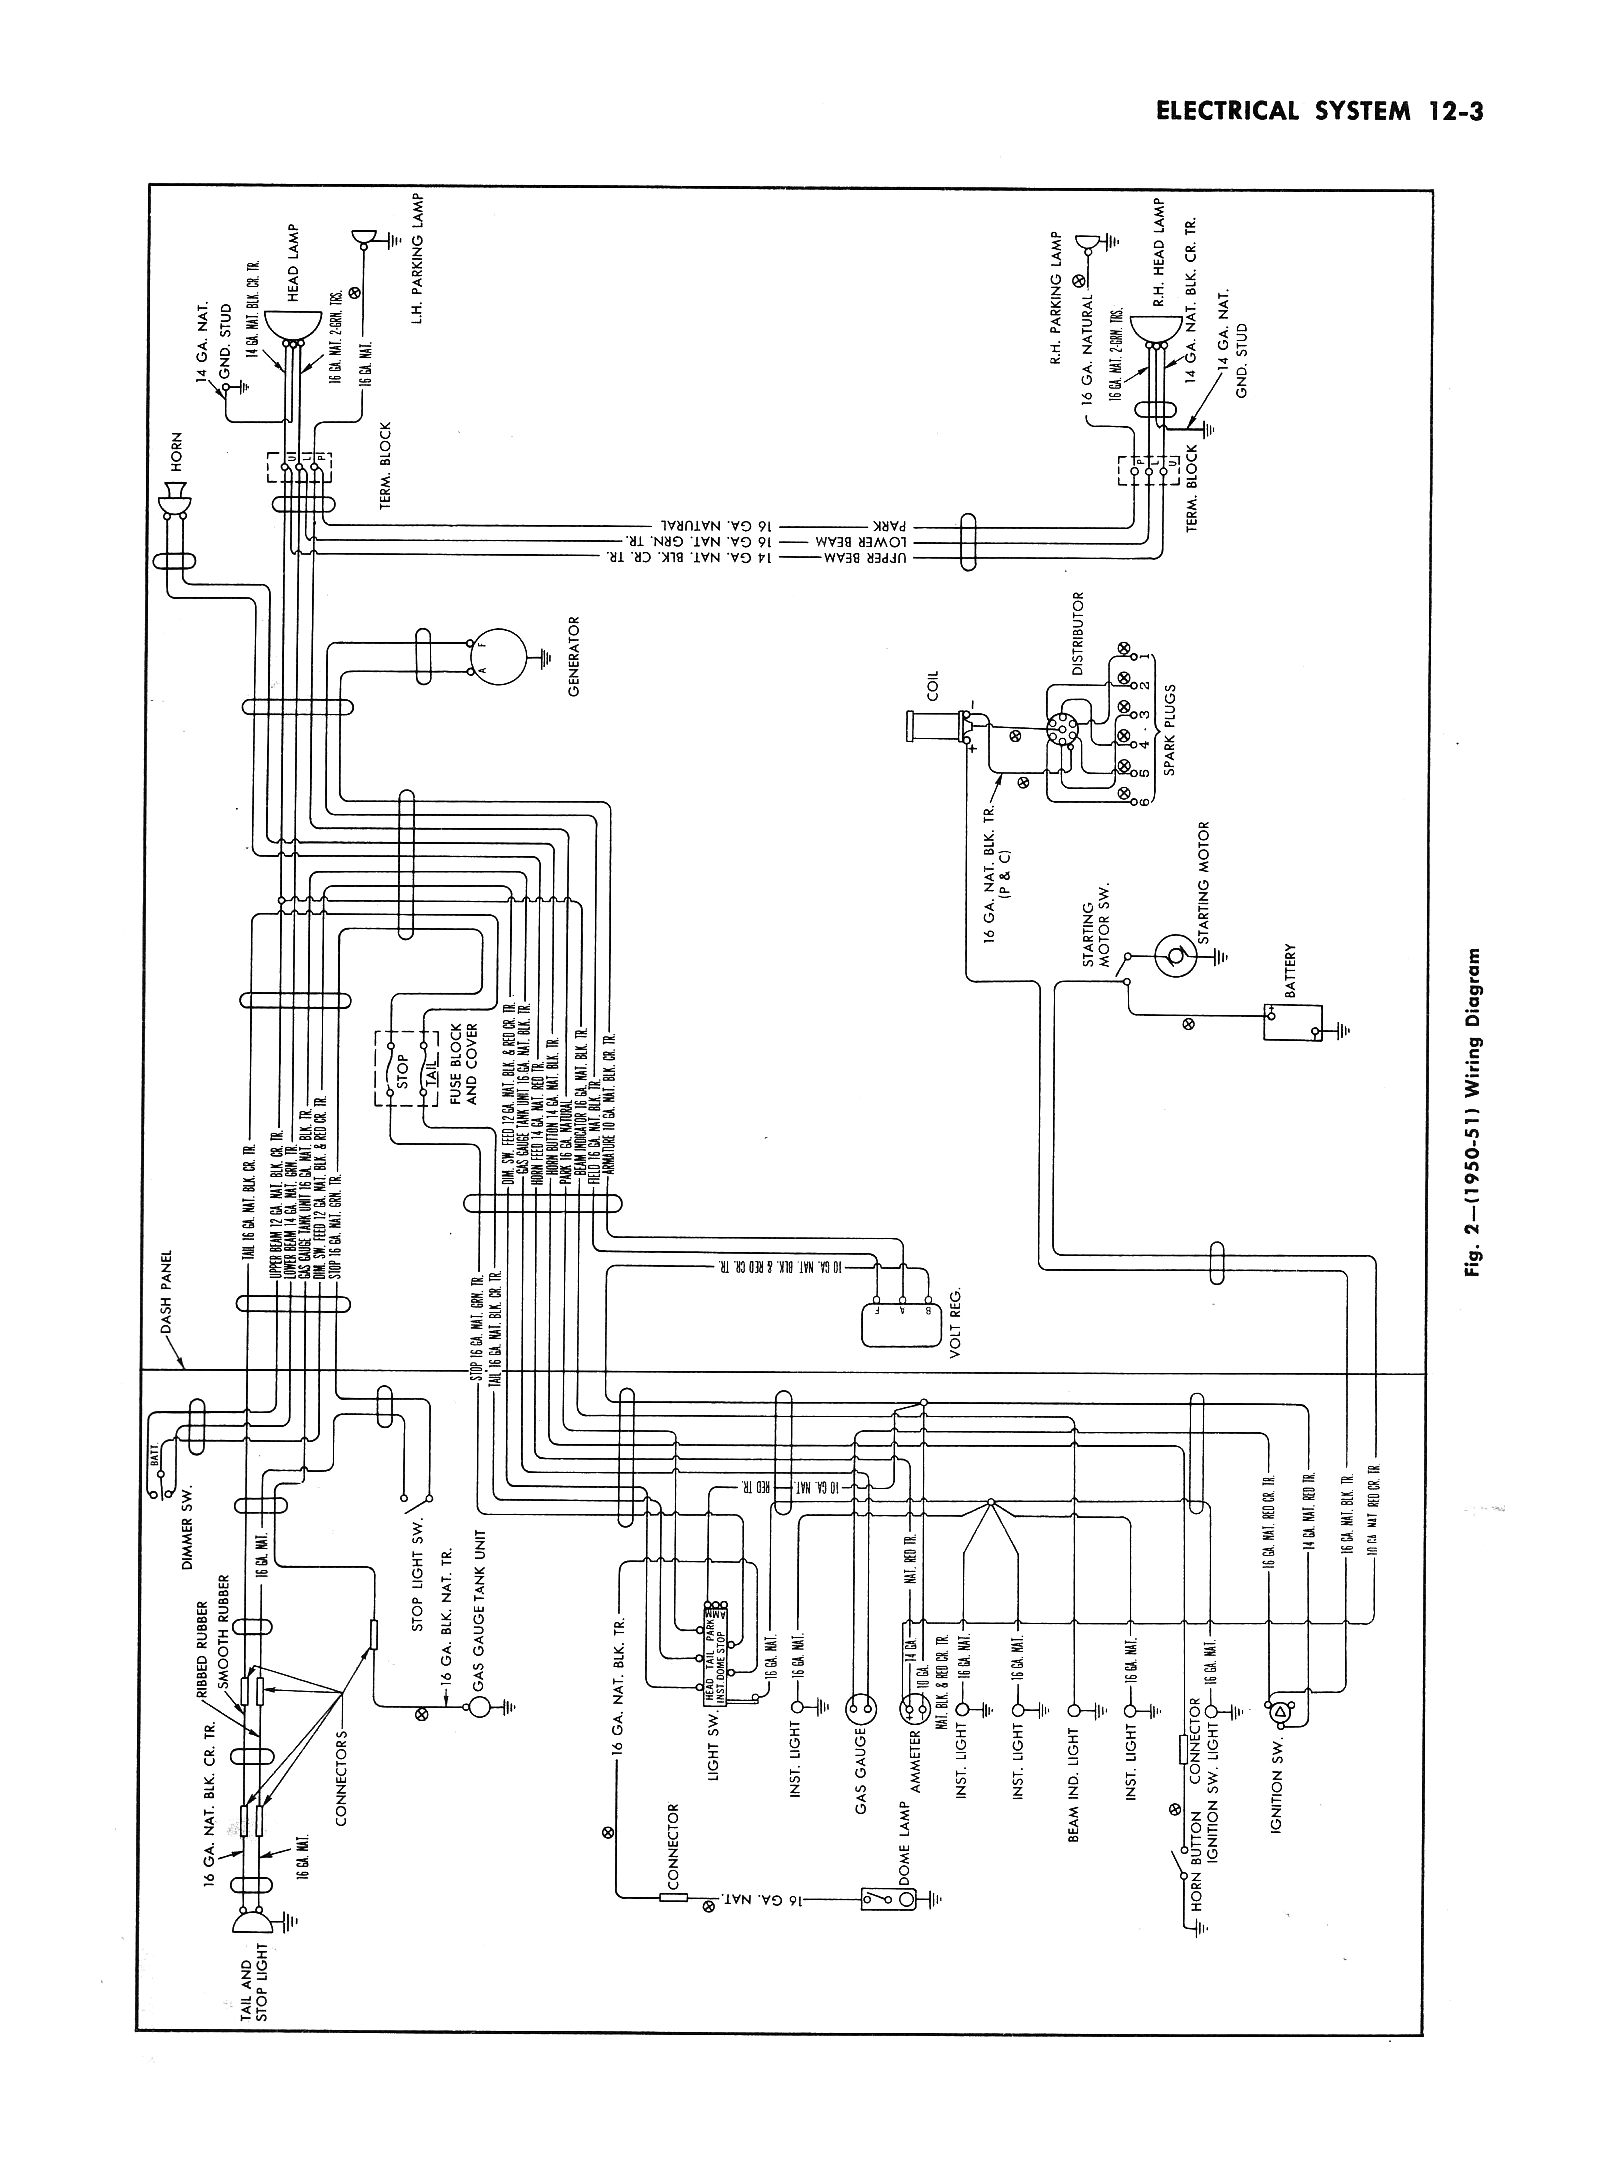 DIAGRAM] Headlight Switch Wiring Diagram For 1951 Olds FULL Version HD  Quality 1951 Olds - VENNDIAGRAMONLINE.NUITDEBOUTAIX.FRvenndiagramonline.nuitdeboutaix.fr